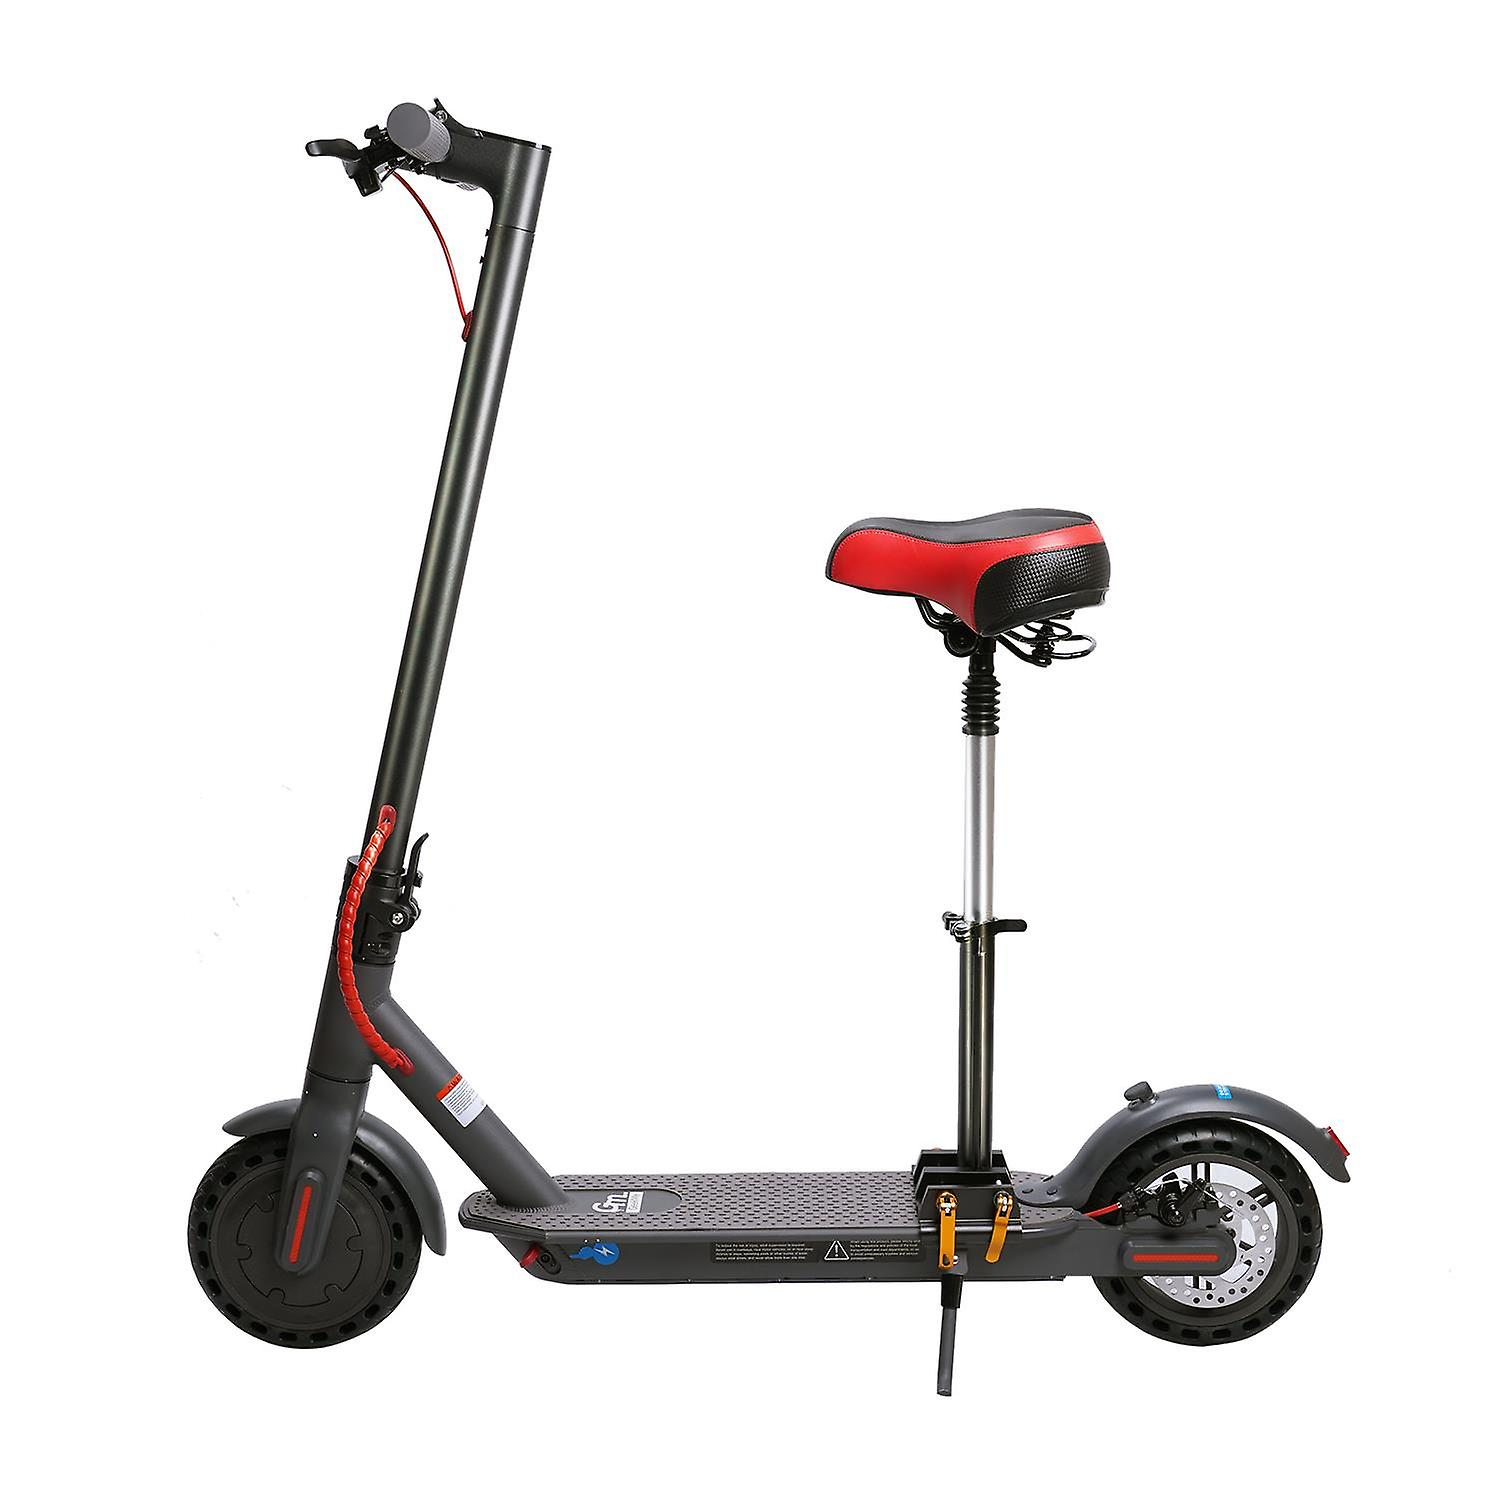 GeekMe Electric Scooter with Seat detachable 8.5 inch Tires City Scooter 25 km/h | Foldable electric scooter with LCD display | 7.5A Li-Ion battery | 120 kg For adults and Teenager